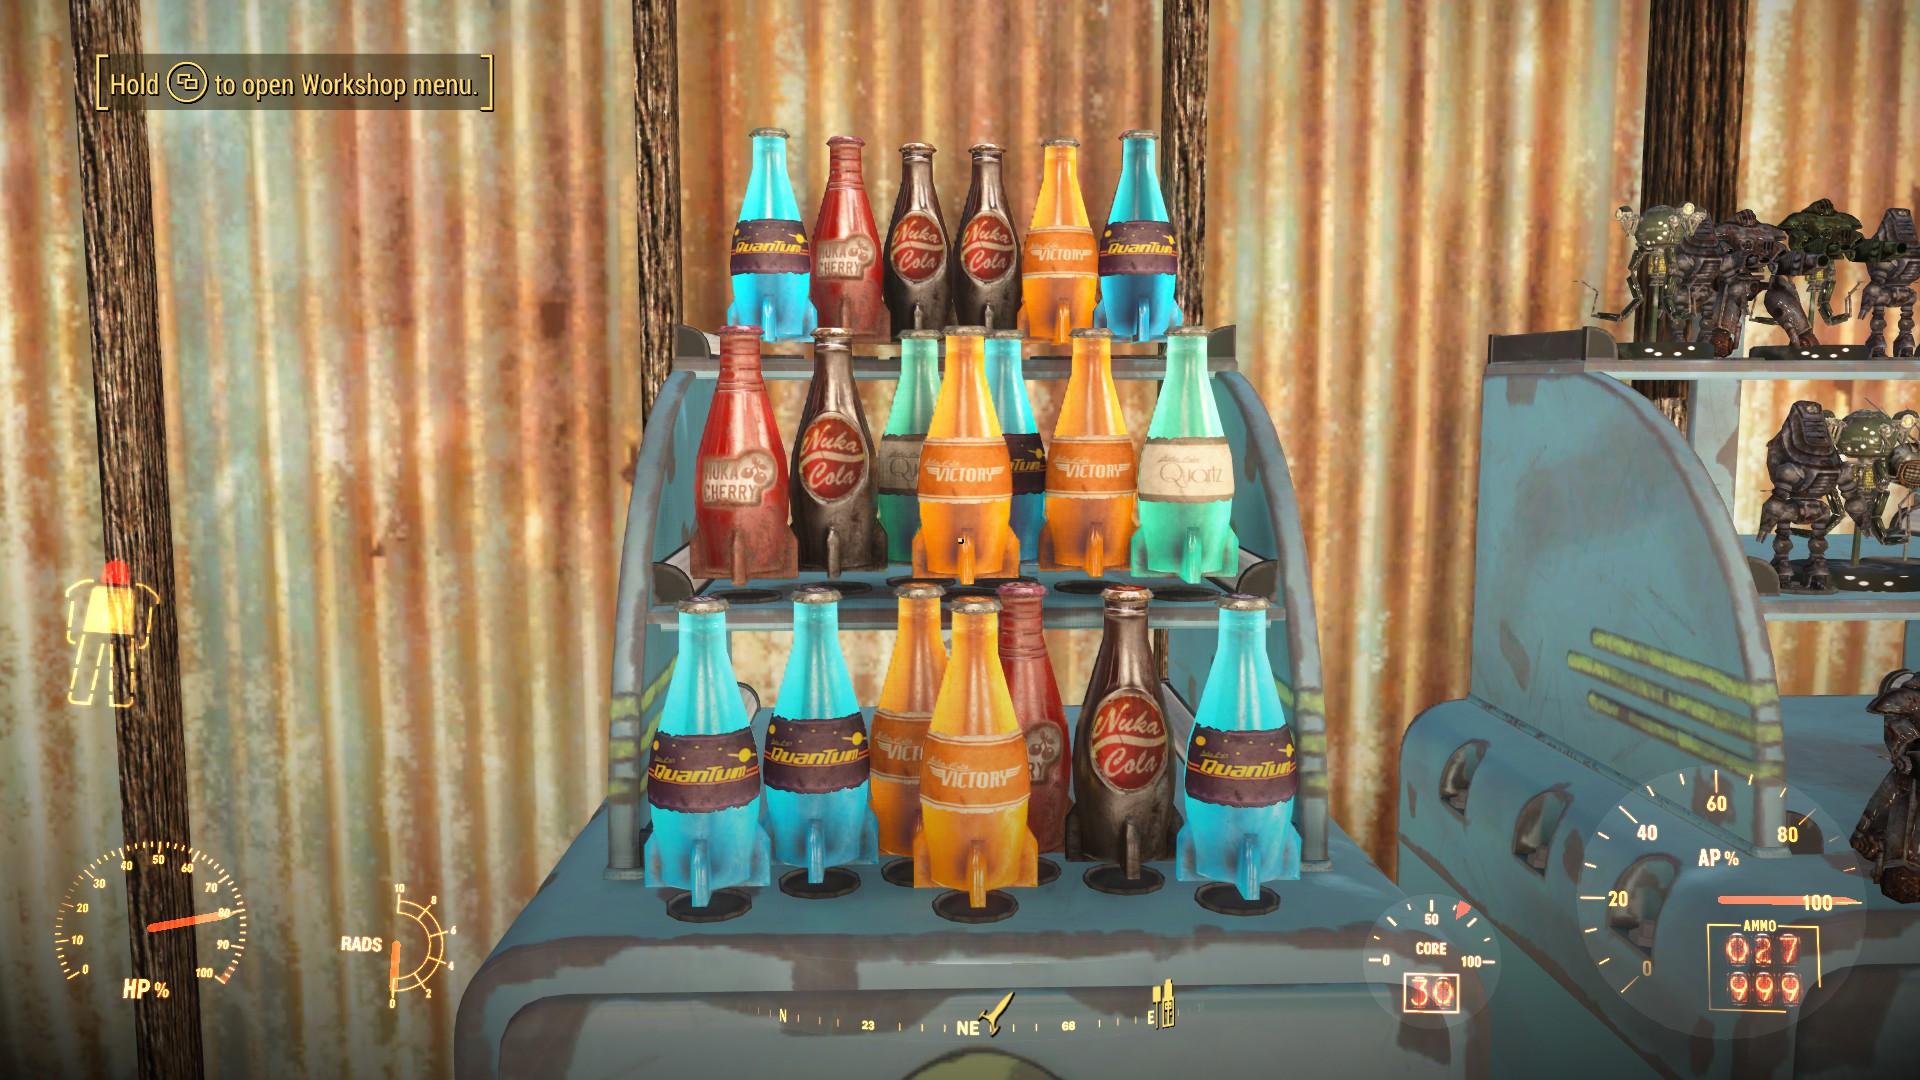 Trade Stands Fallout 4 : Functional display stands model robots nuka cola etc at